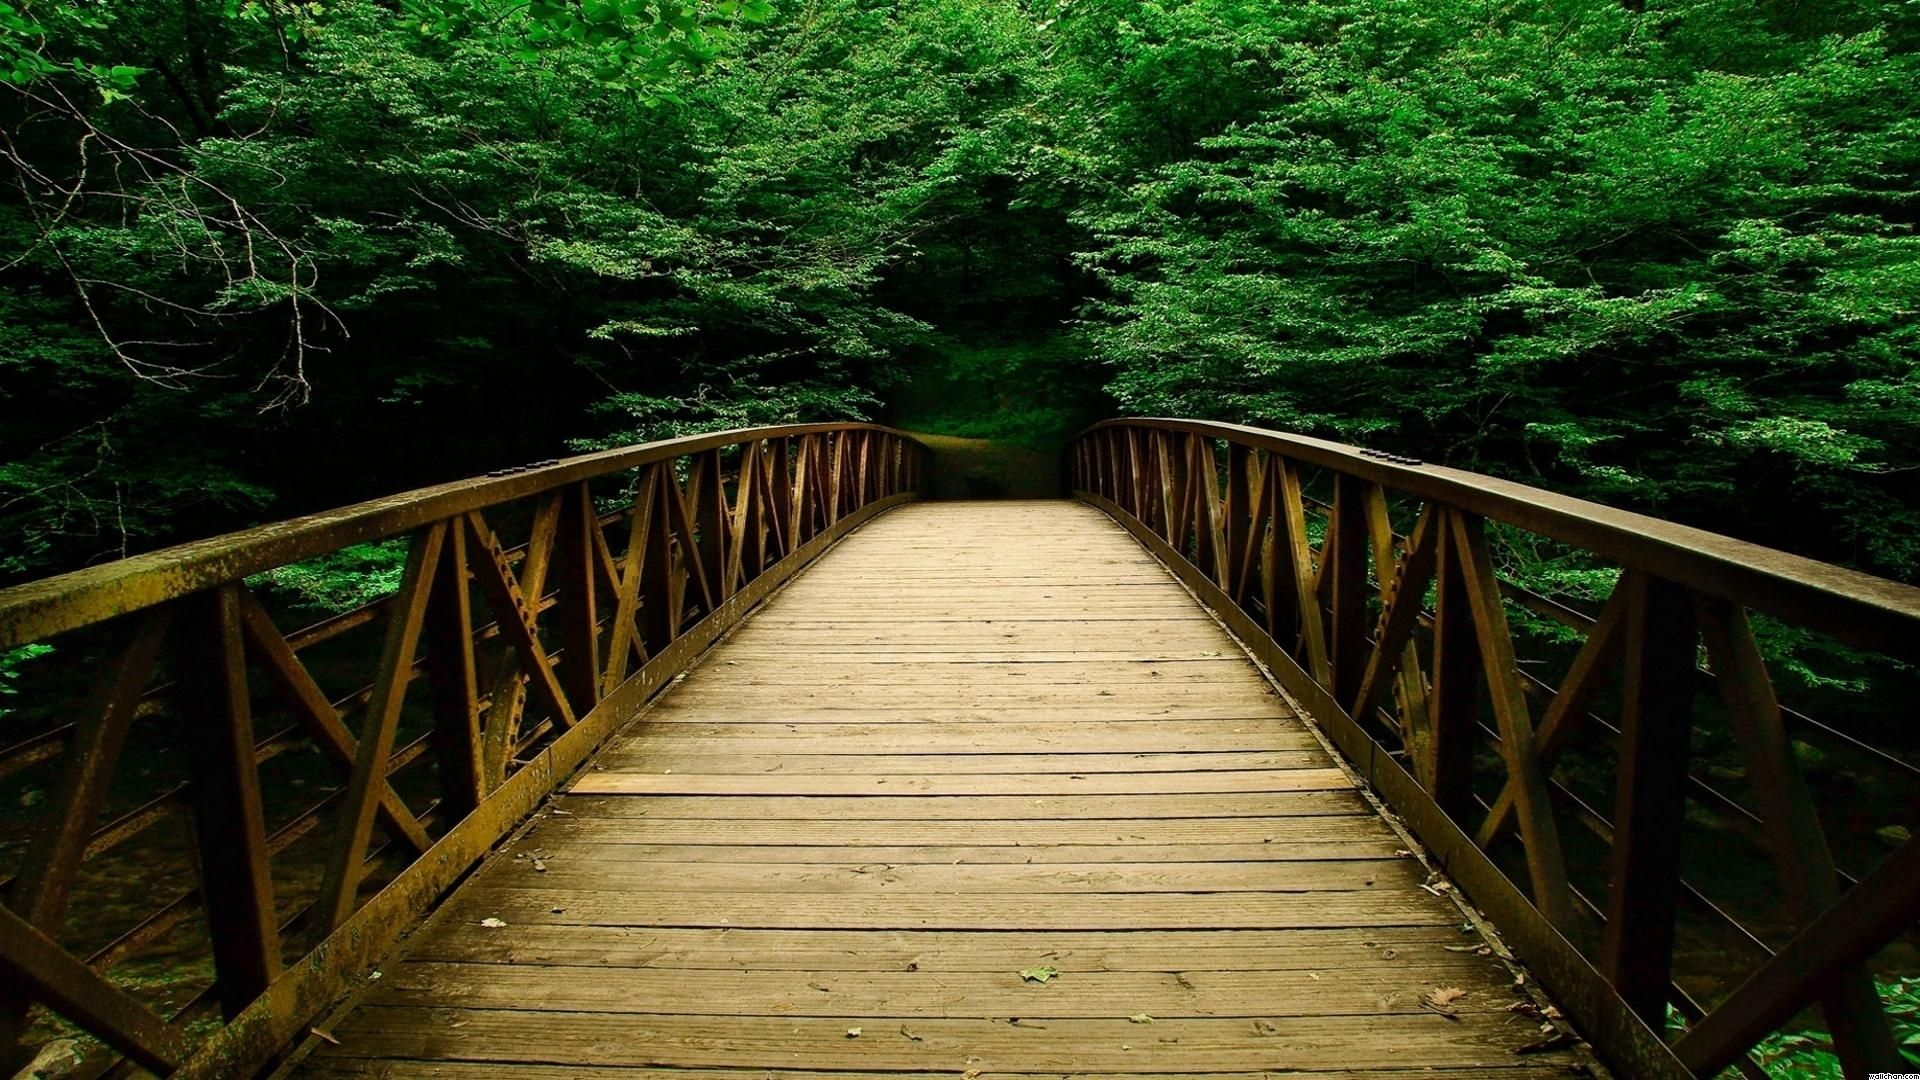 Free Nature Background Video Hd Free Download Download Backgrounds Image Nature Wallpaper Cave Nature Background Images Nature Backgrounds Bridge Wallpaper